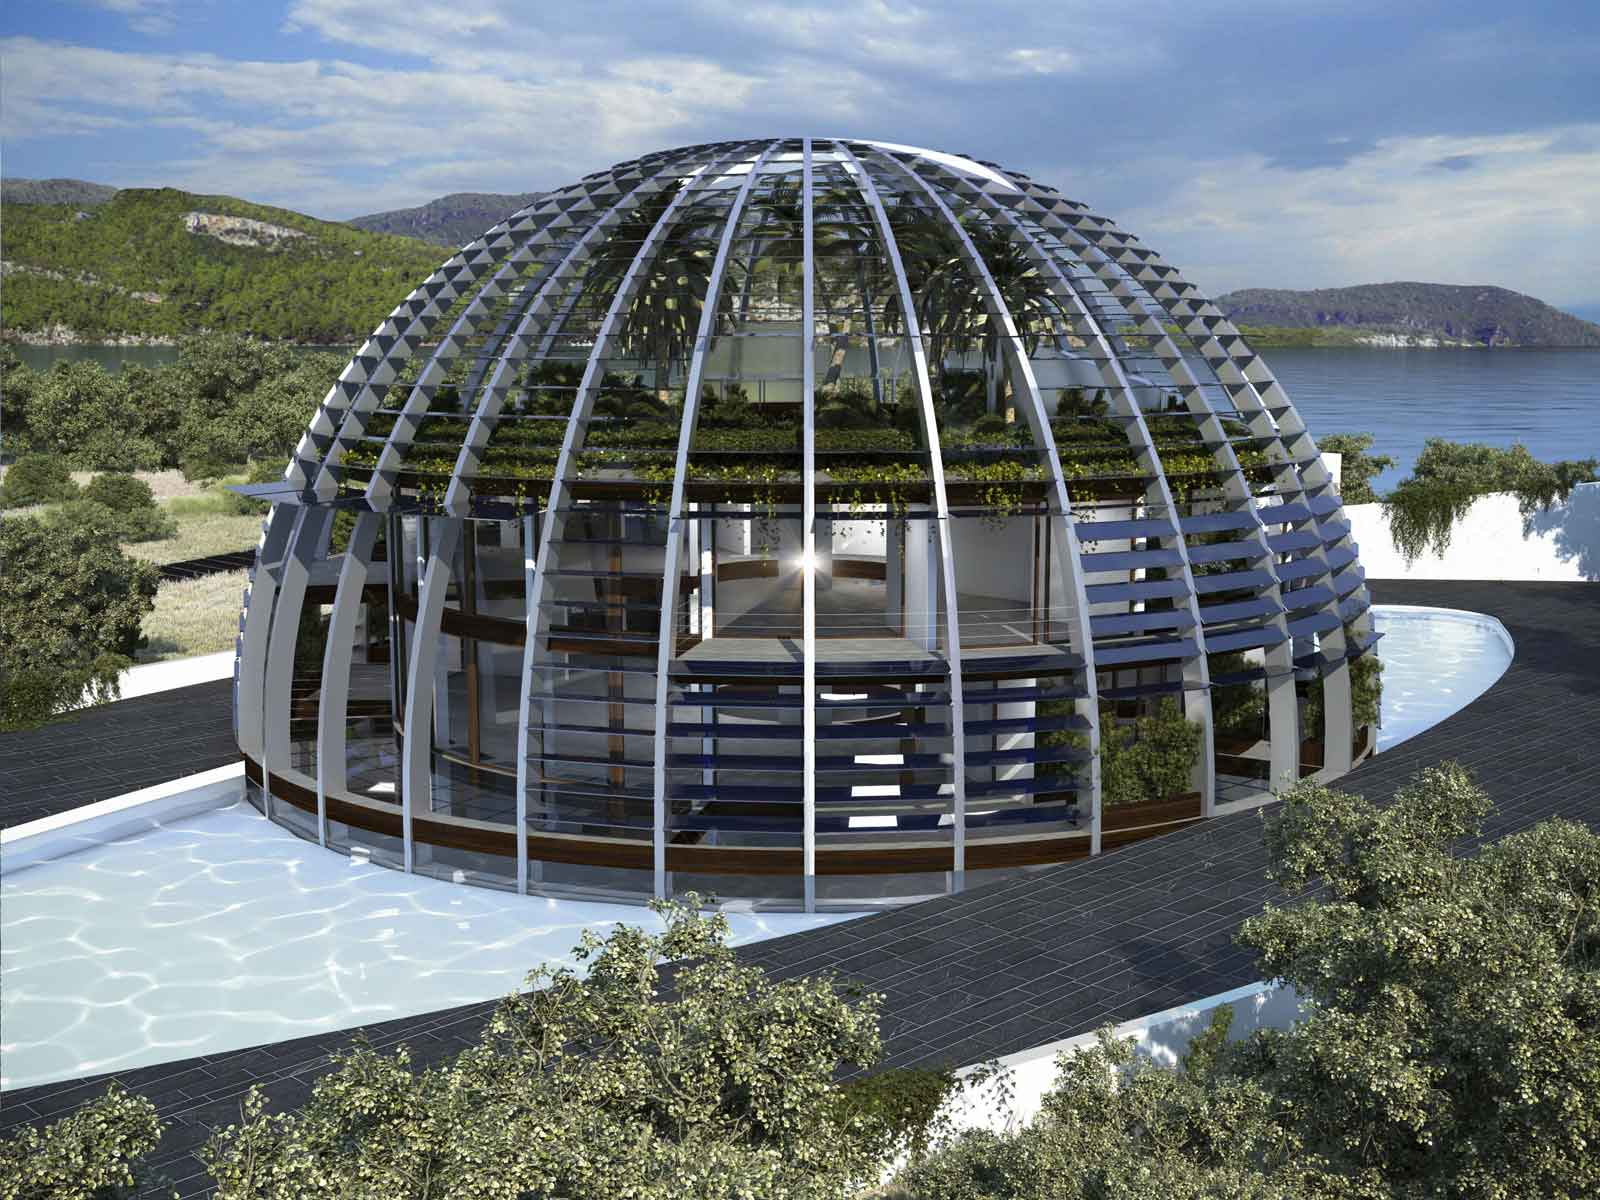 00_EYE OF HORUS ECO-HOUSE